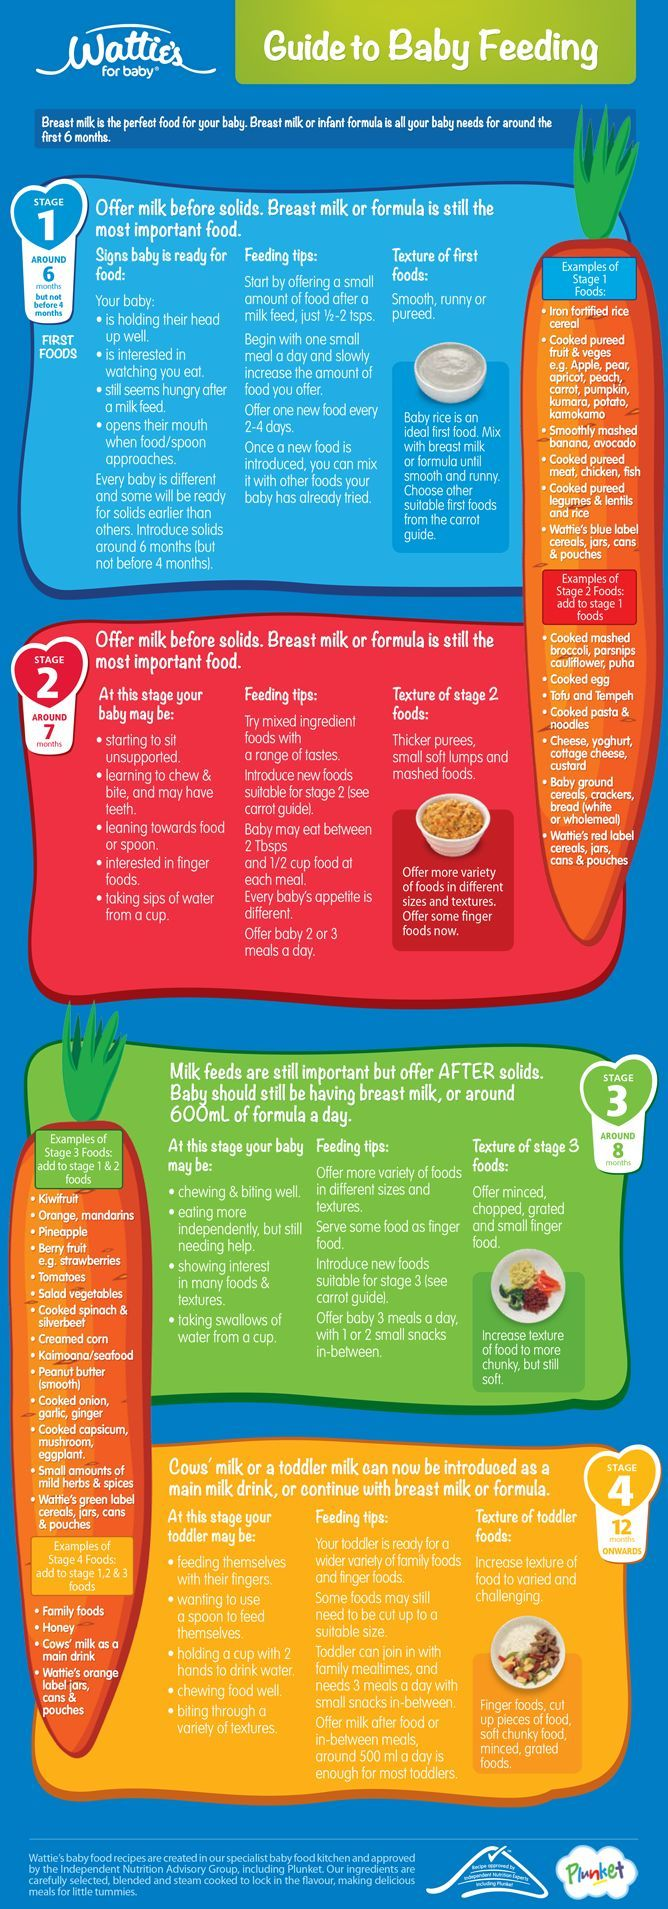 Wattie's Guide to Baby Feeding Monthly Food Chart for